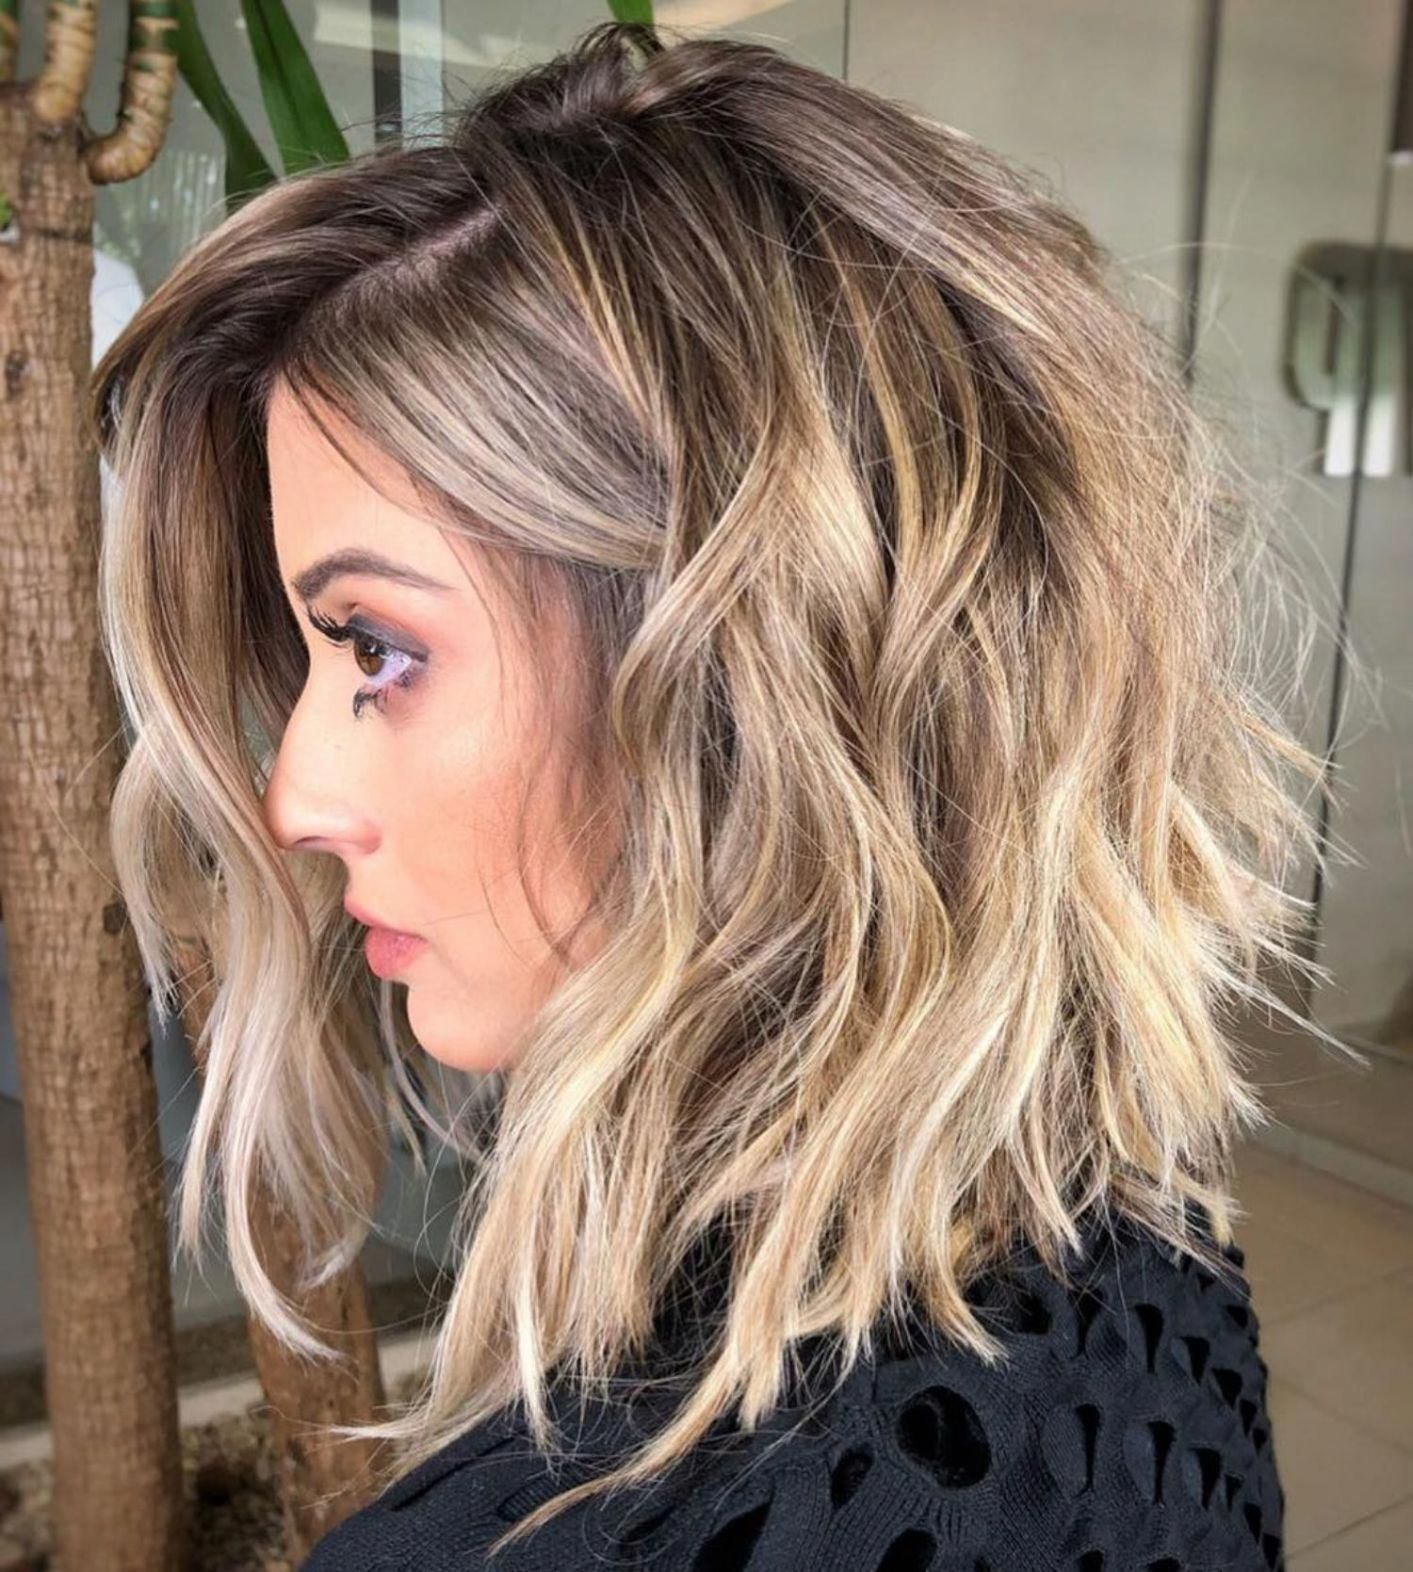 11 Most Magnetizing Hairstyles for Thick Wavy Hair  Thick wavy